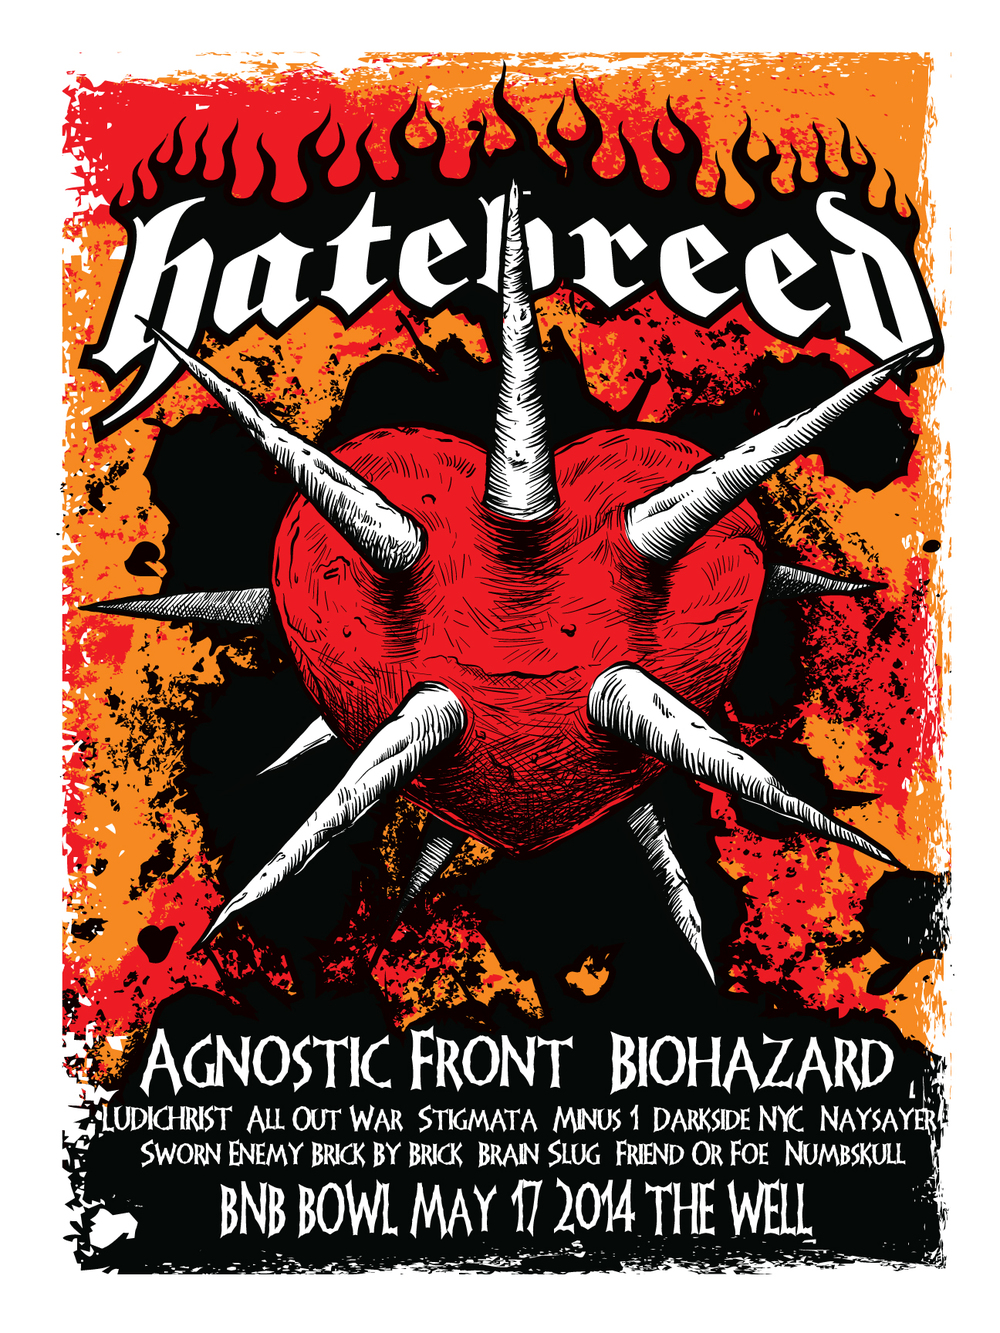 hatebreed5-17-14.jpg